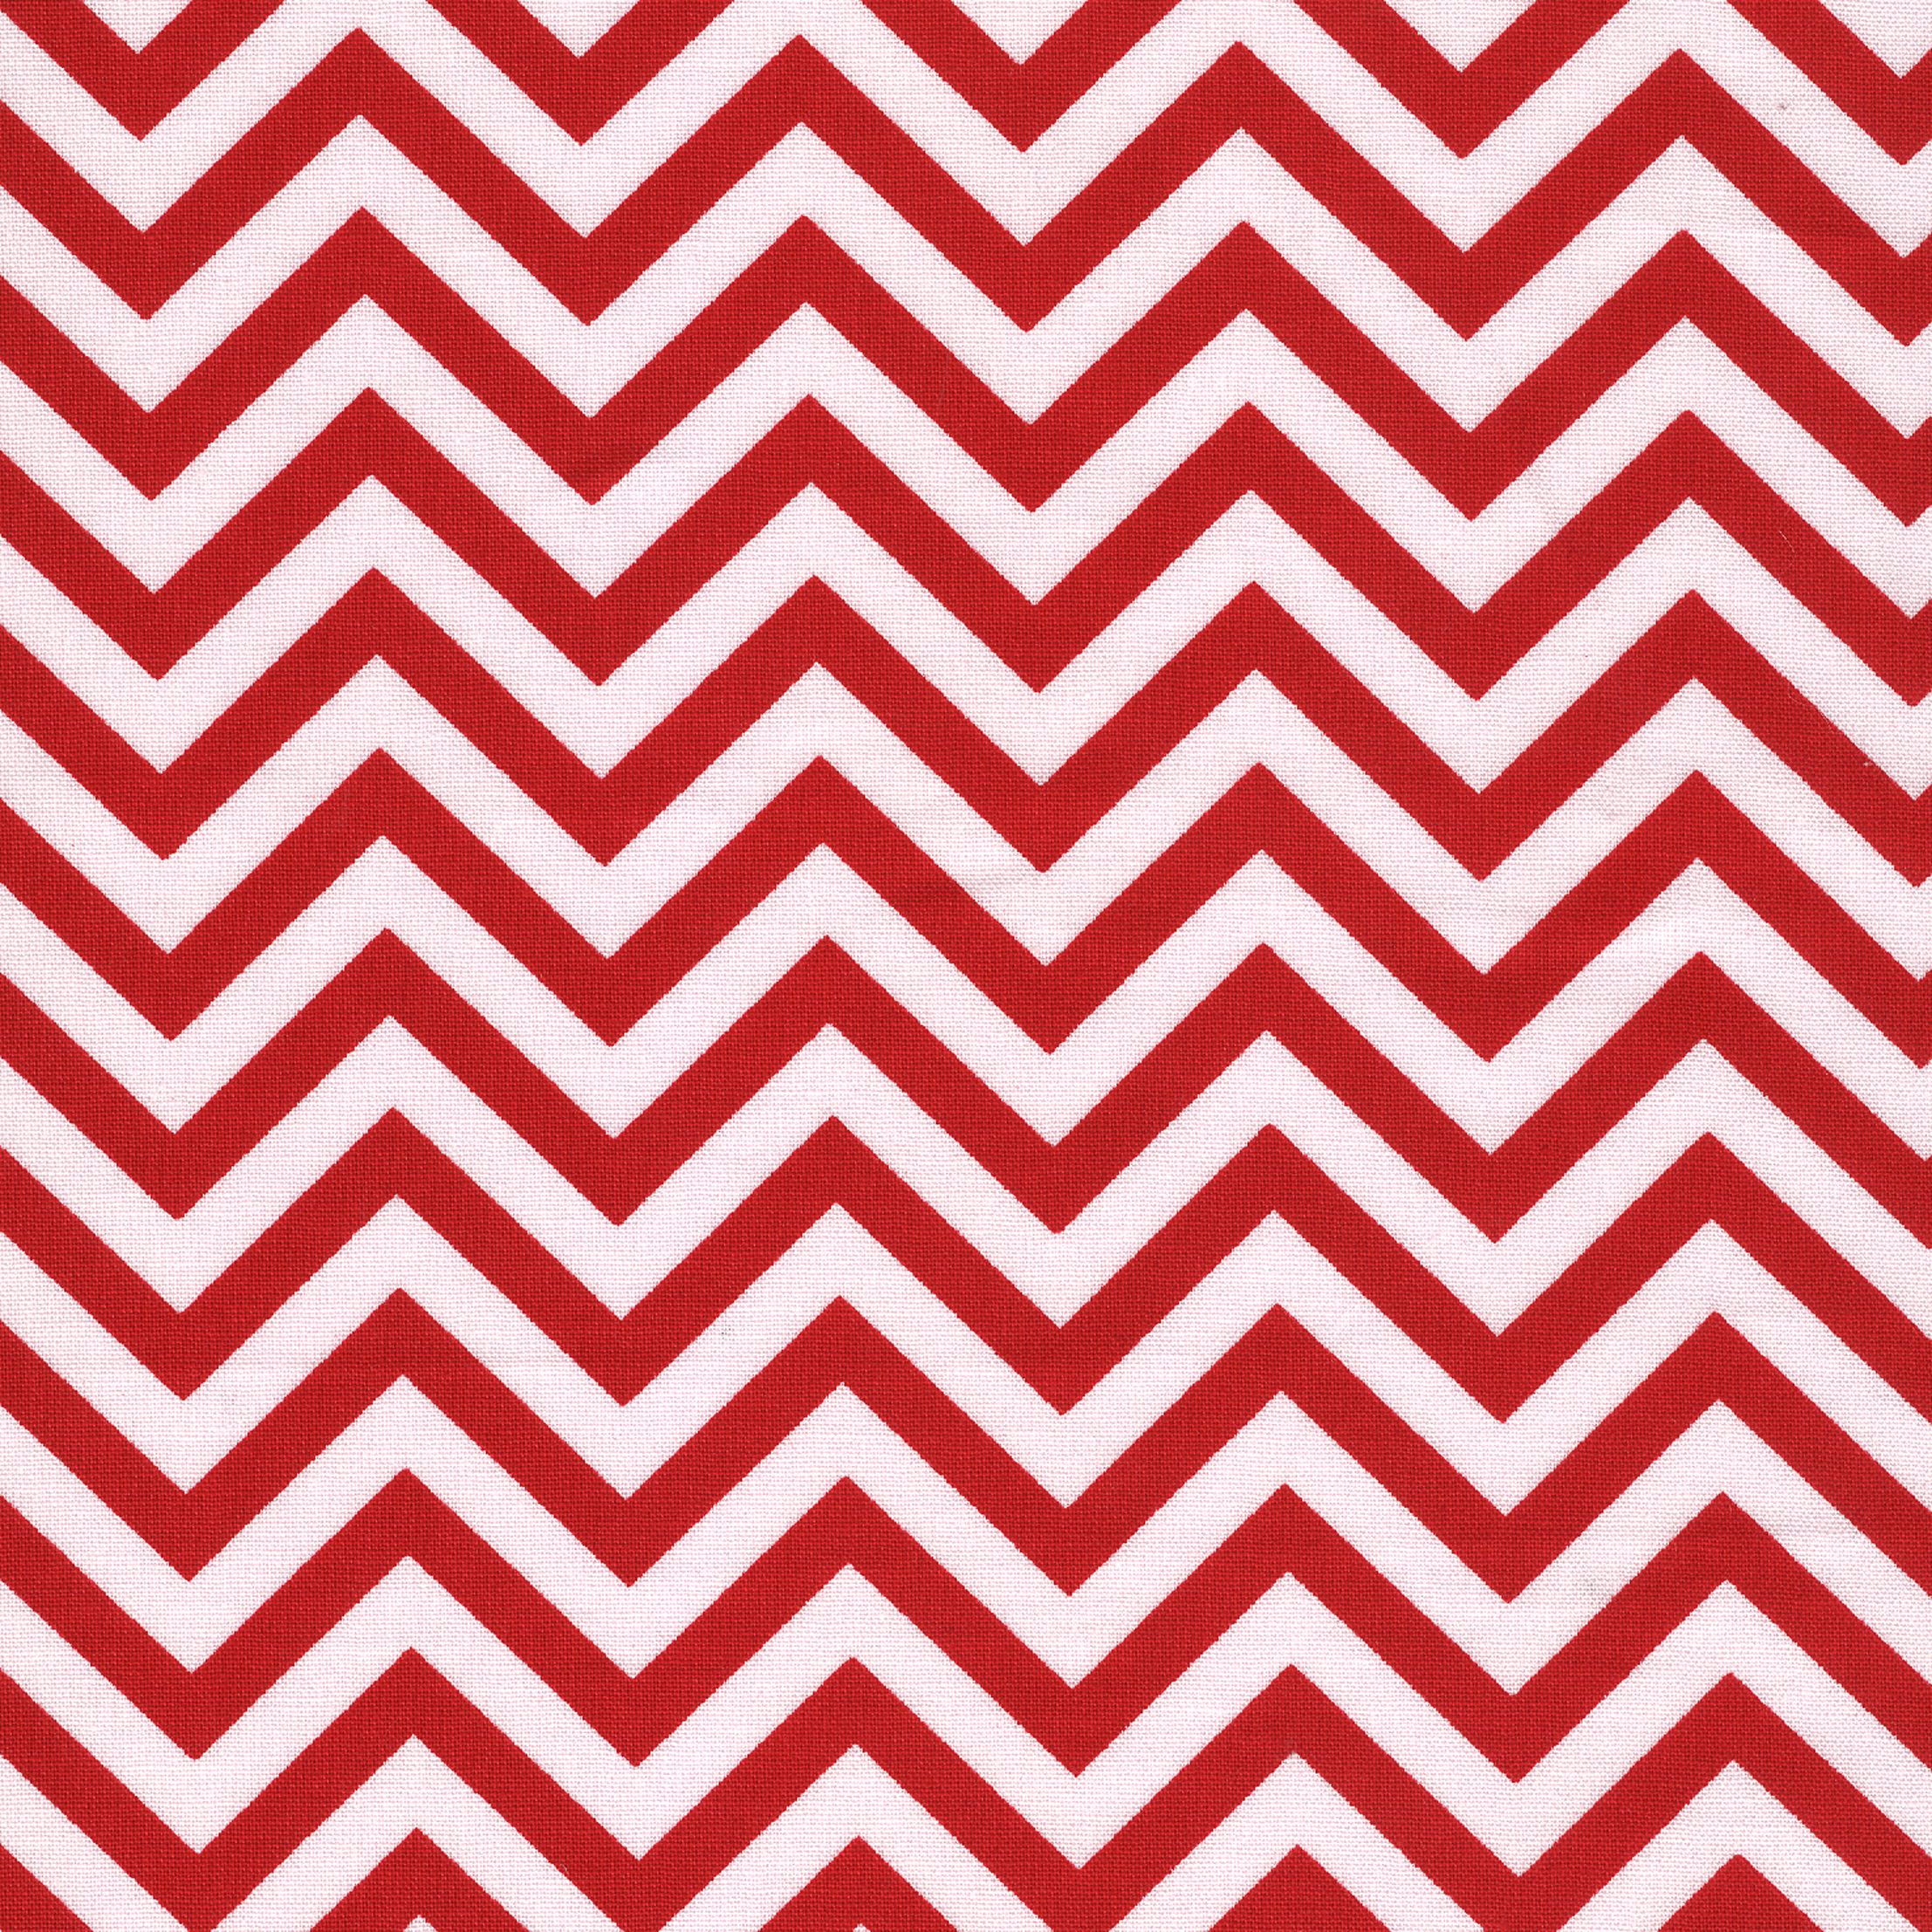 SHASON TEXTILE (3 Yards cut) 100% COTTON PRINT QUILTING FABRIC, RED / WHITE ZIGZAG